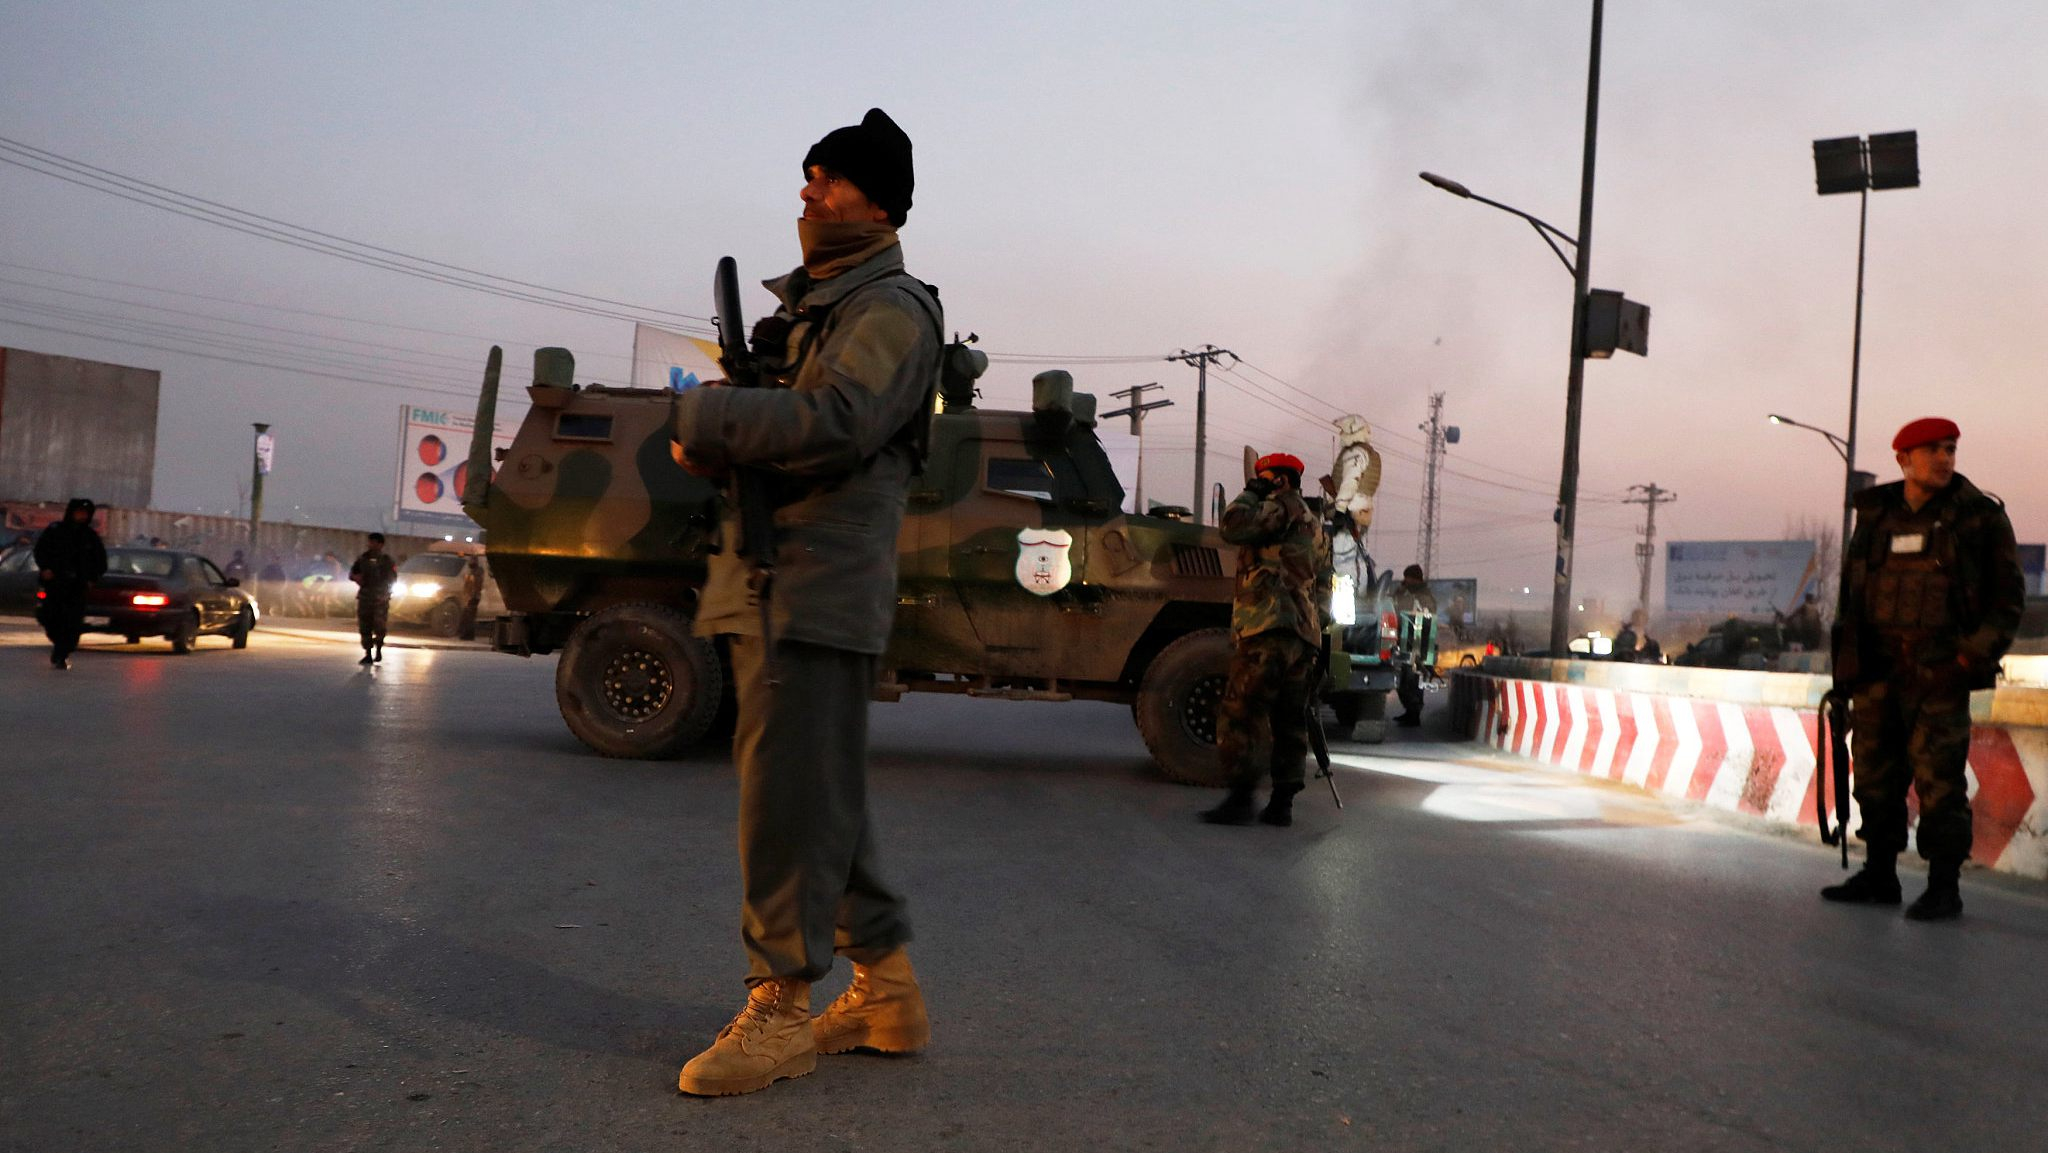 Death toll rises to 43 in attack on Kabul govt compound